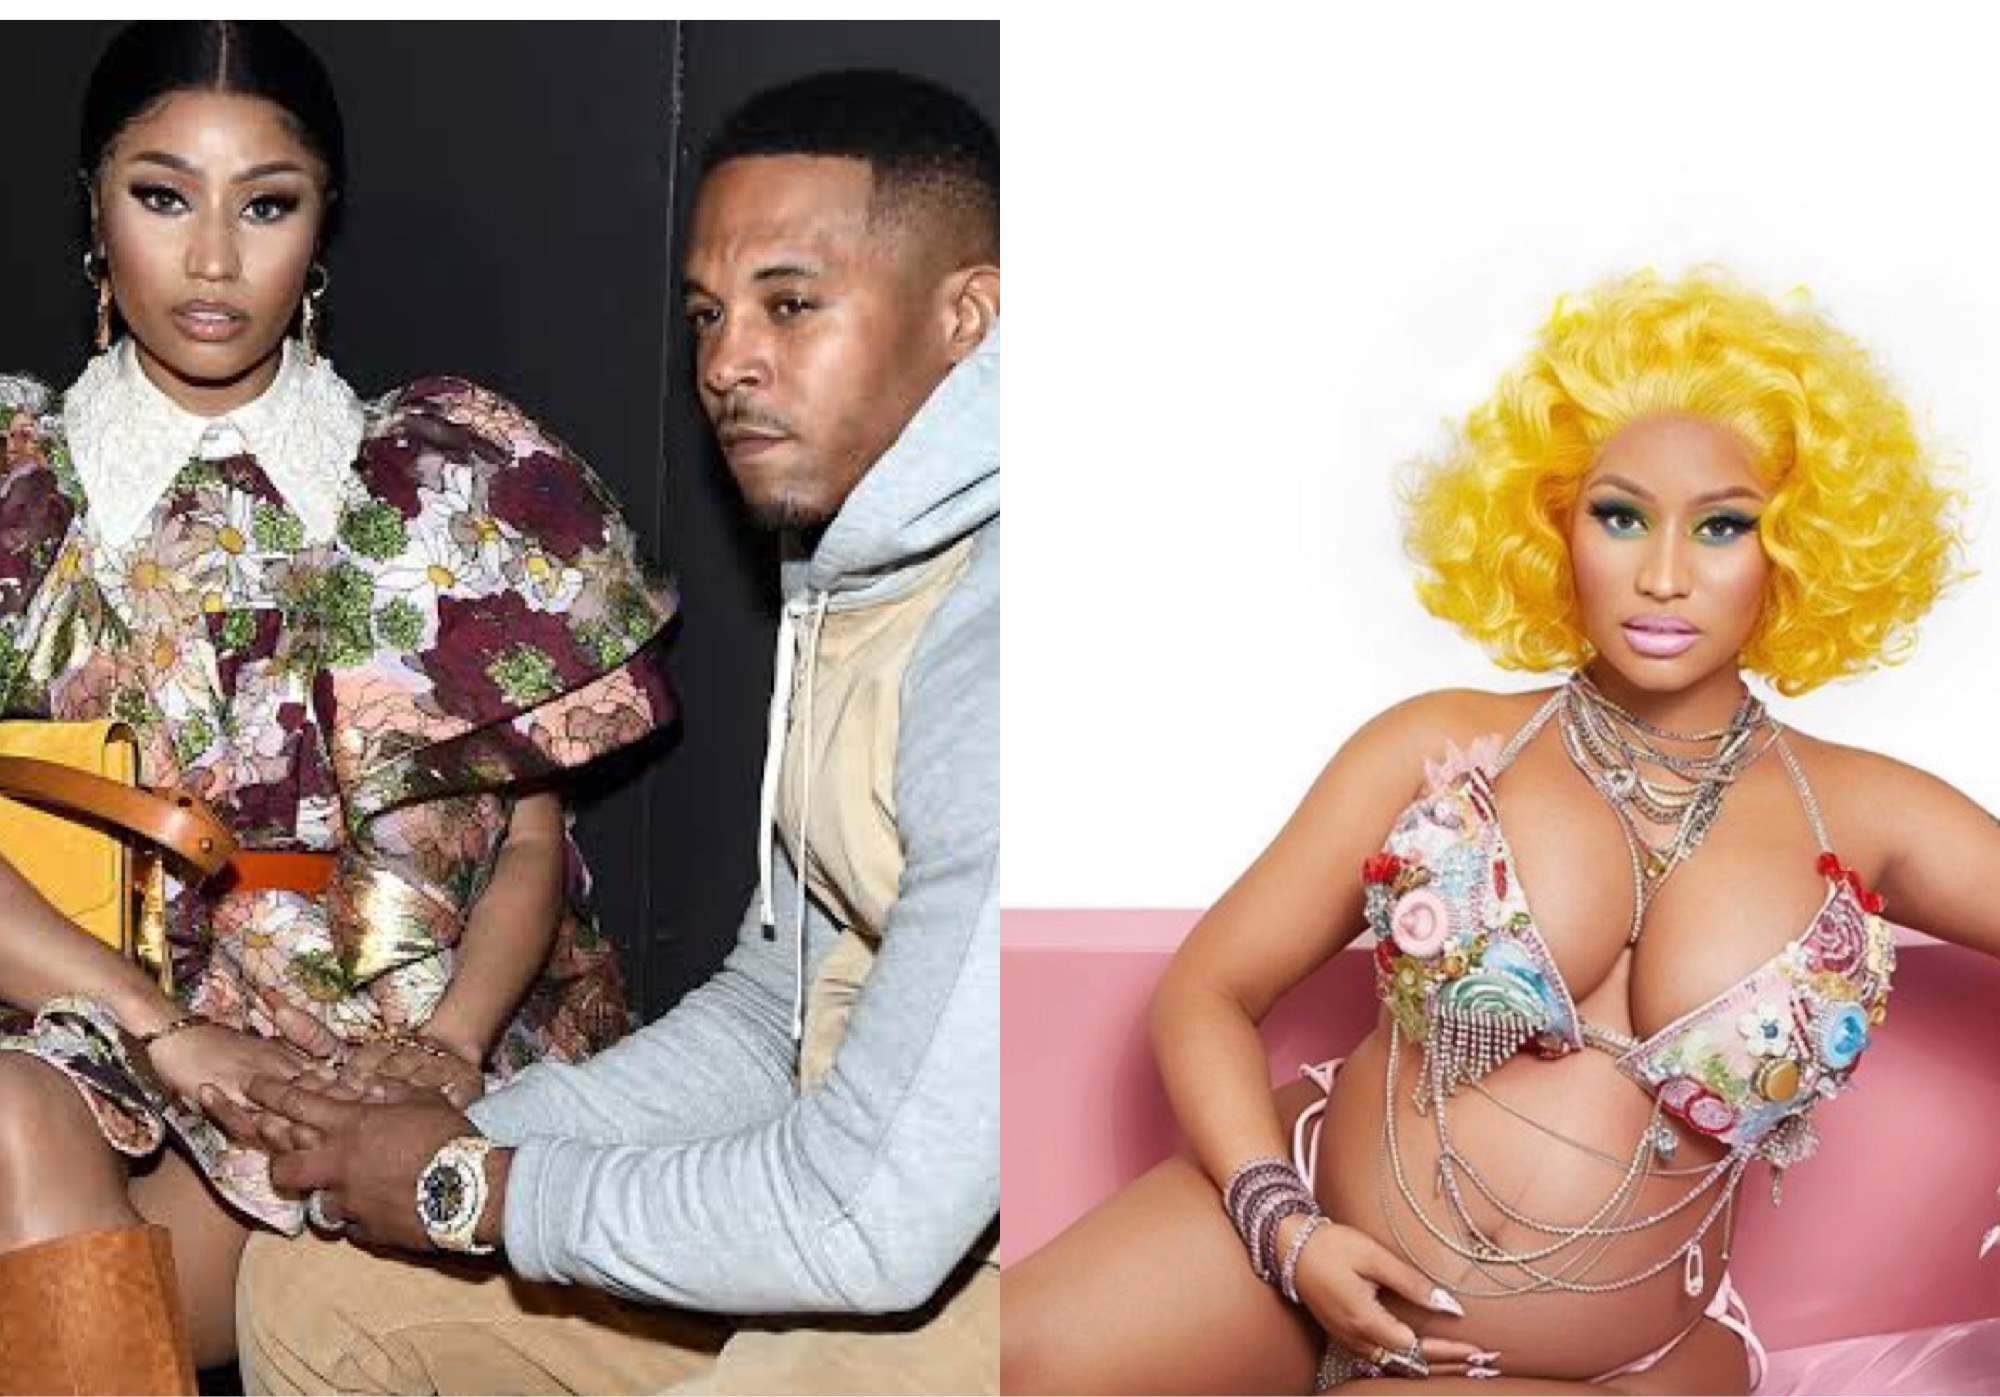 Nicki Minaj and her husband, Kenneth Petty